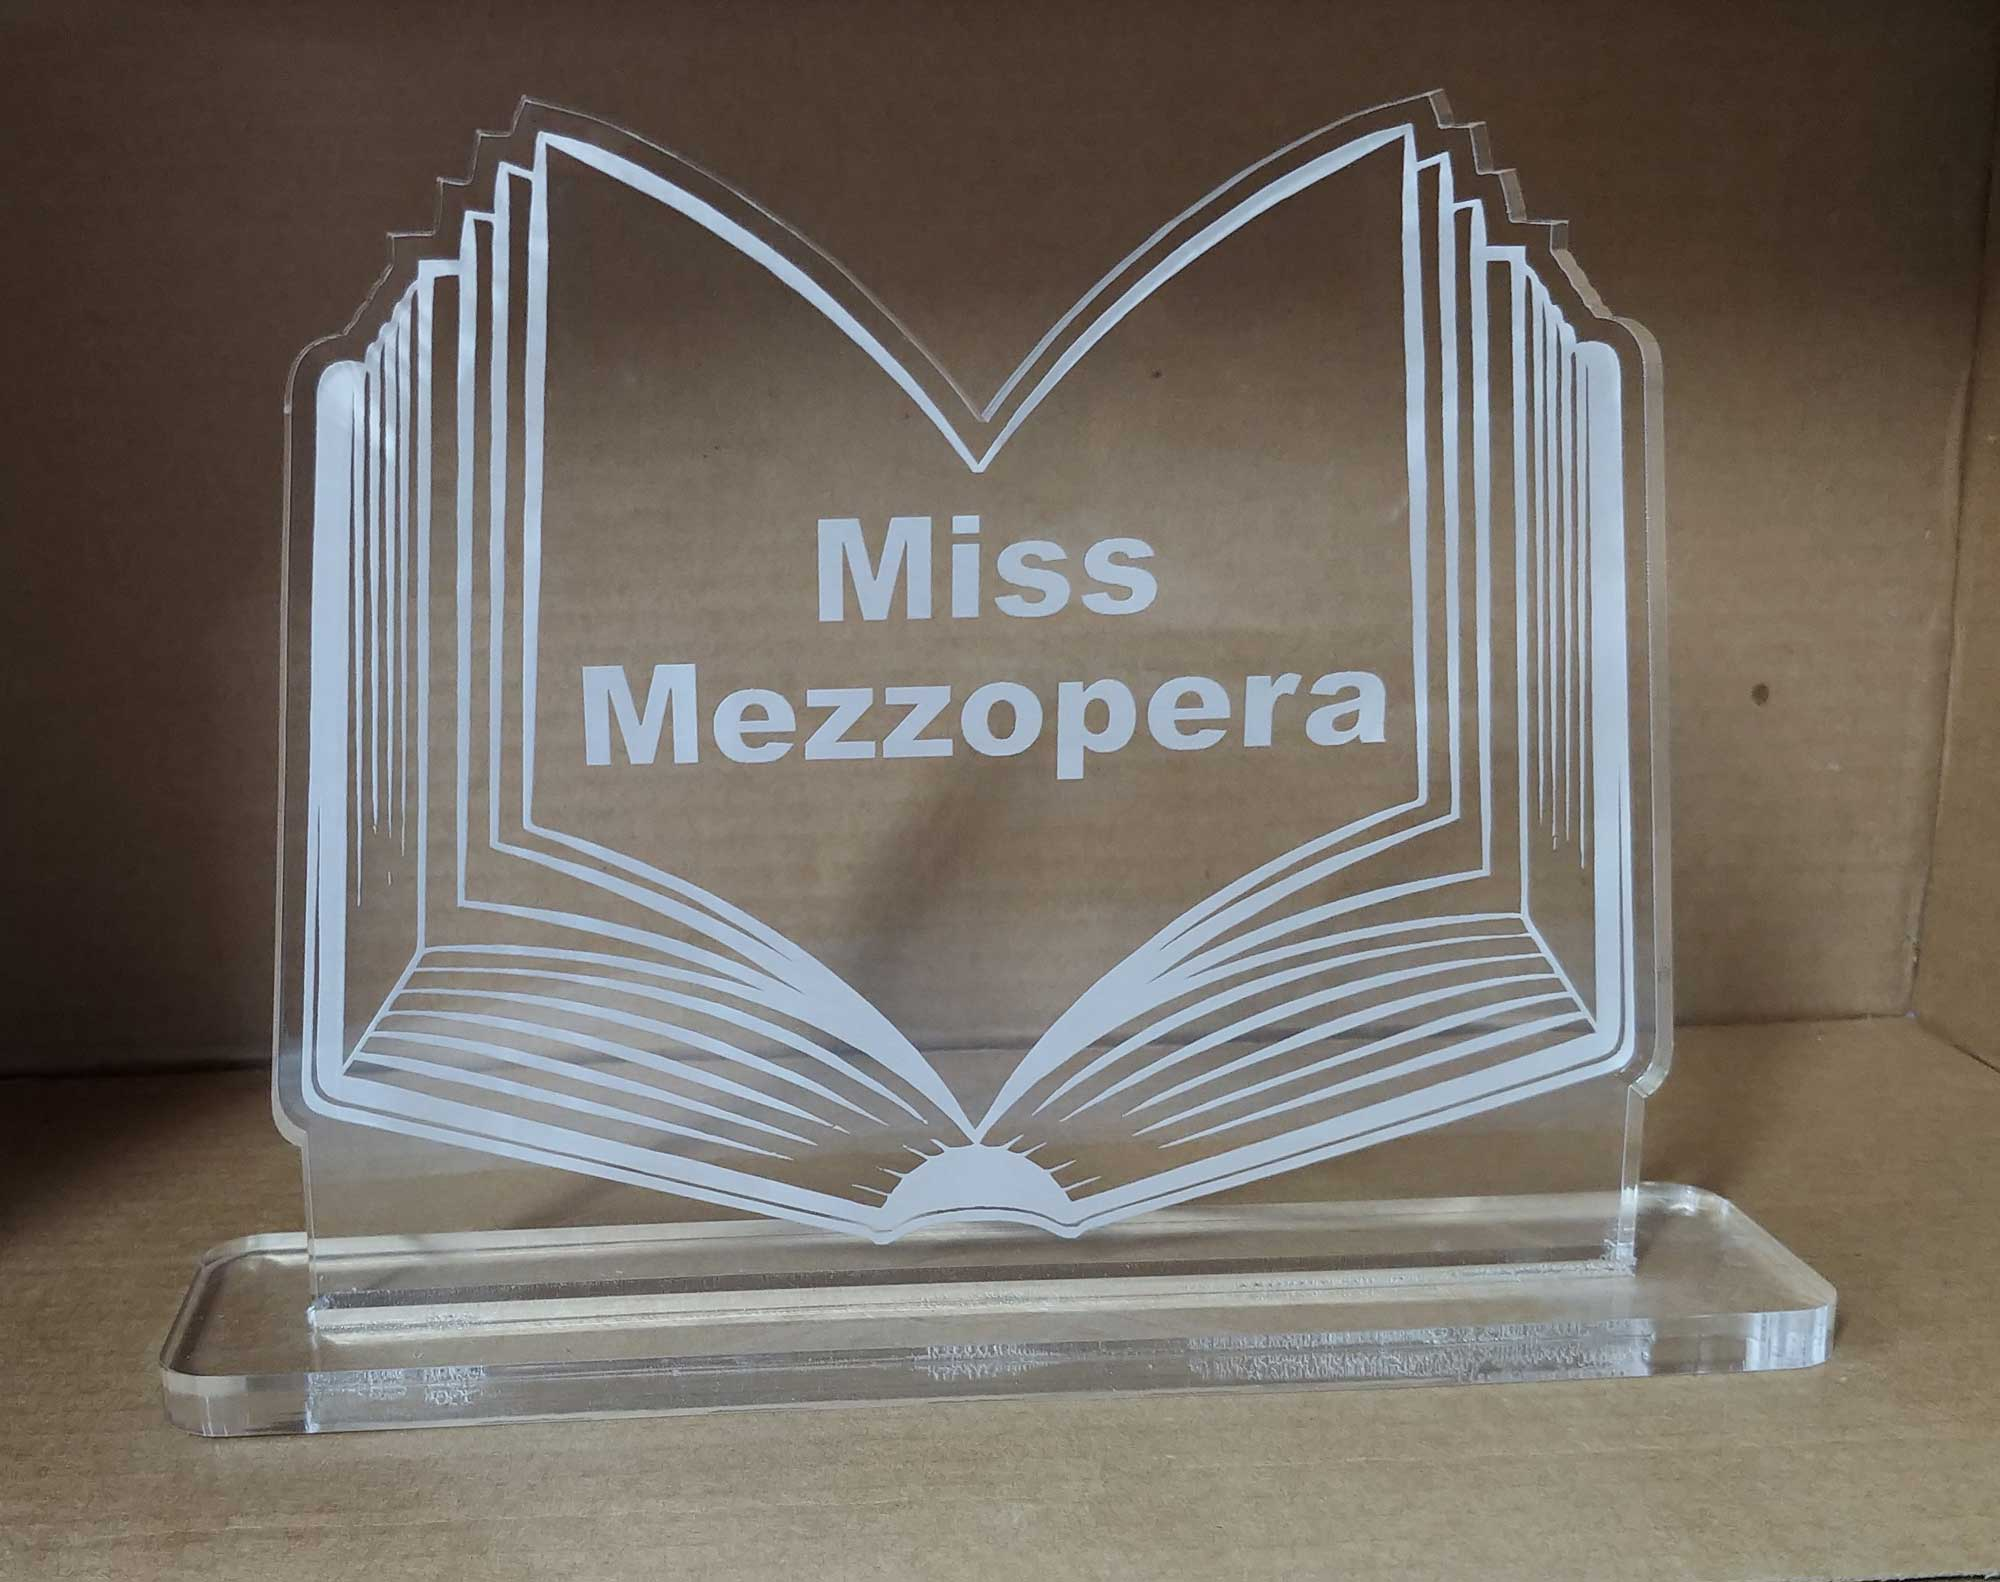 Laser engraved Acrylic Awards - Trophies  Plaques, Book design